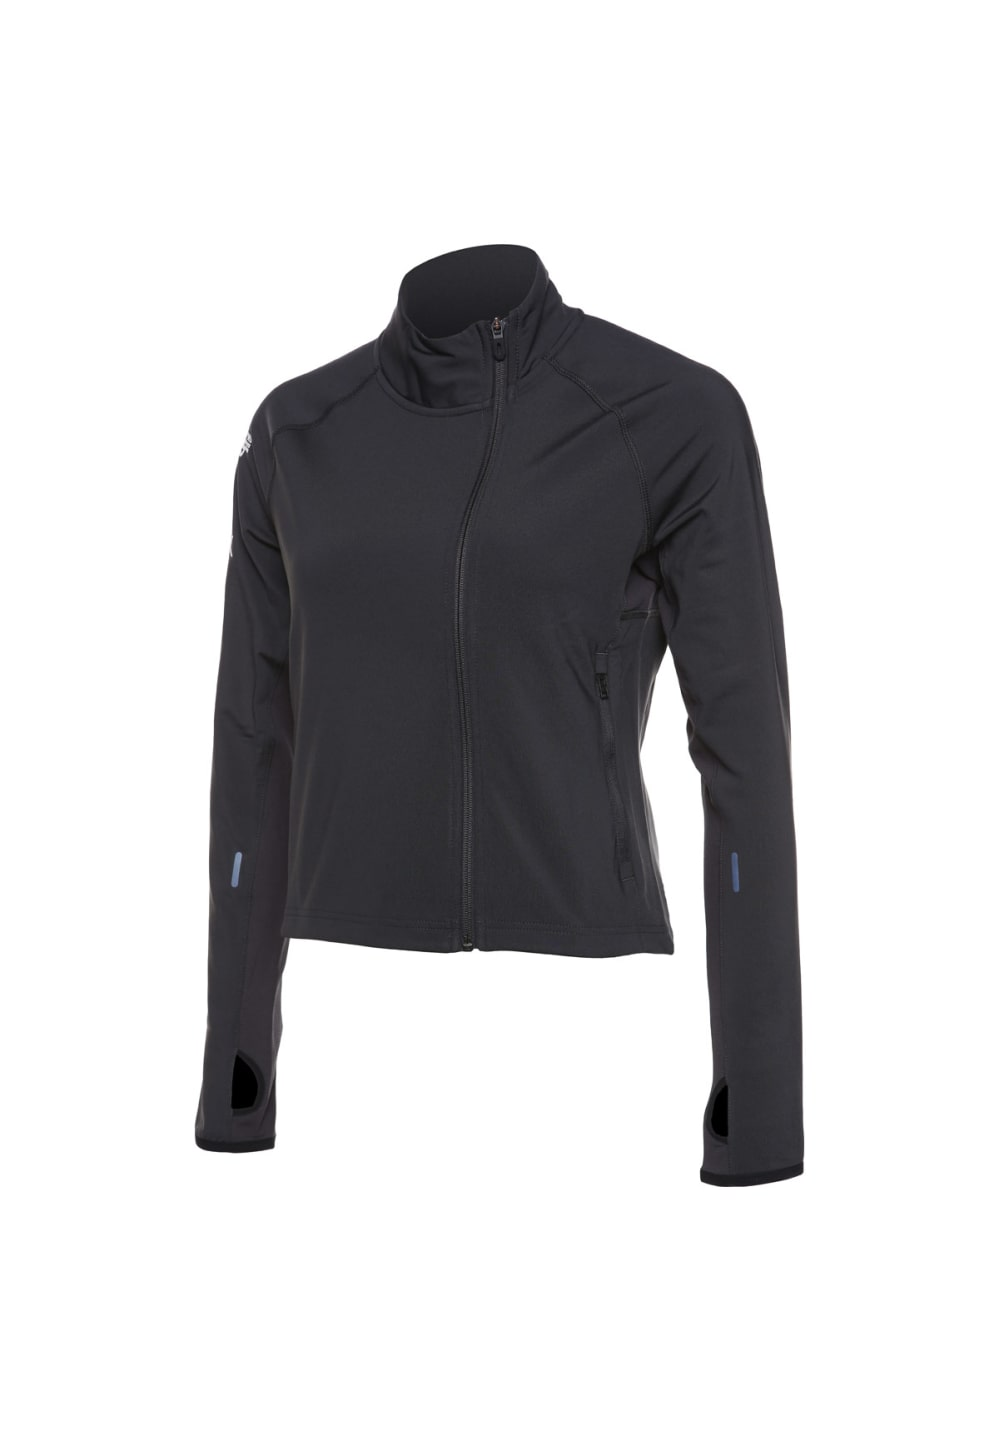 27924e6d Reebok OS Track Jacket - Sweatshirts / Hoodies for Women - Black